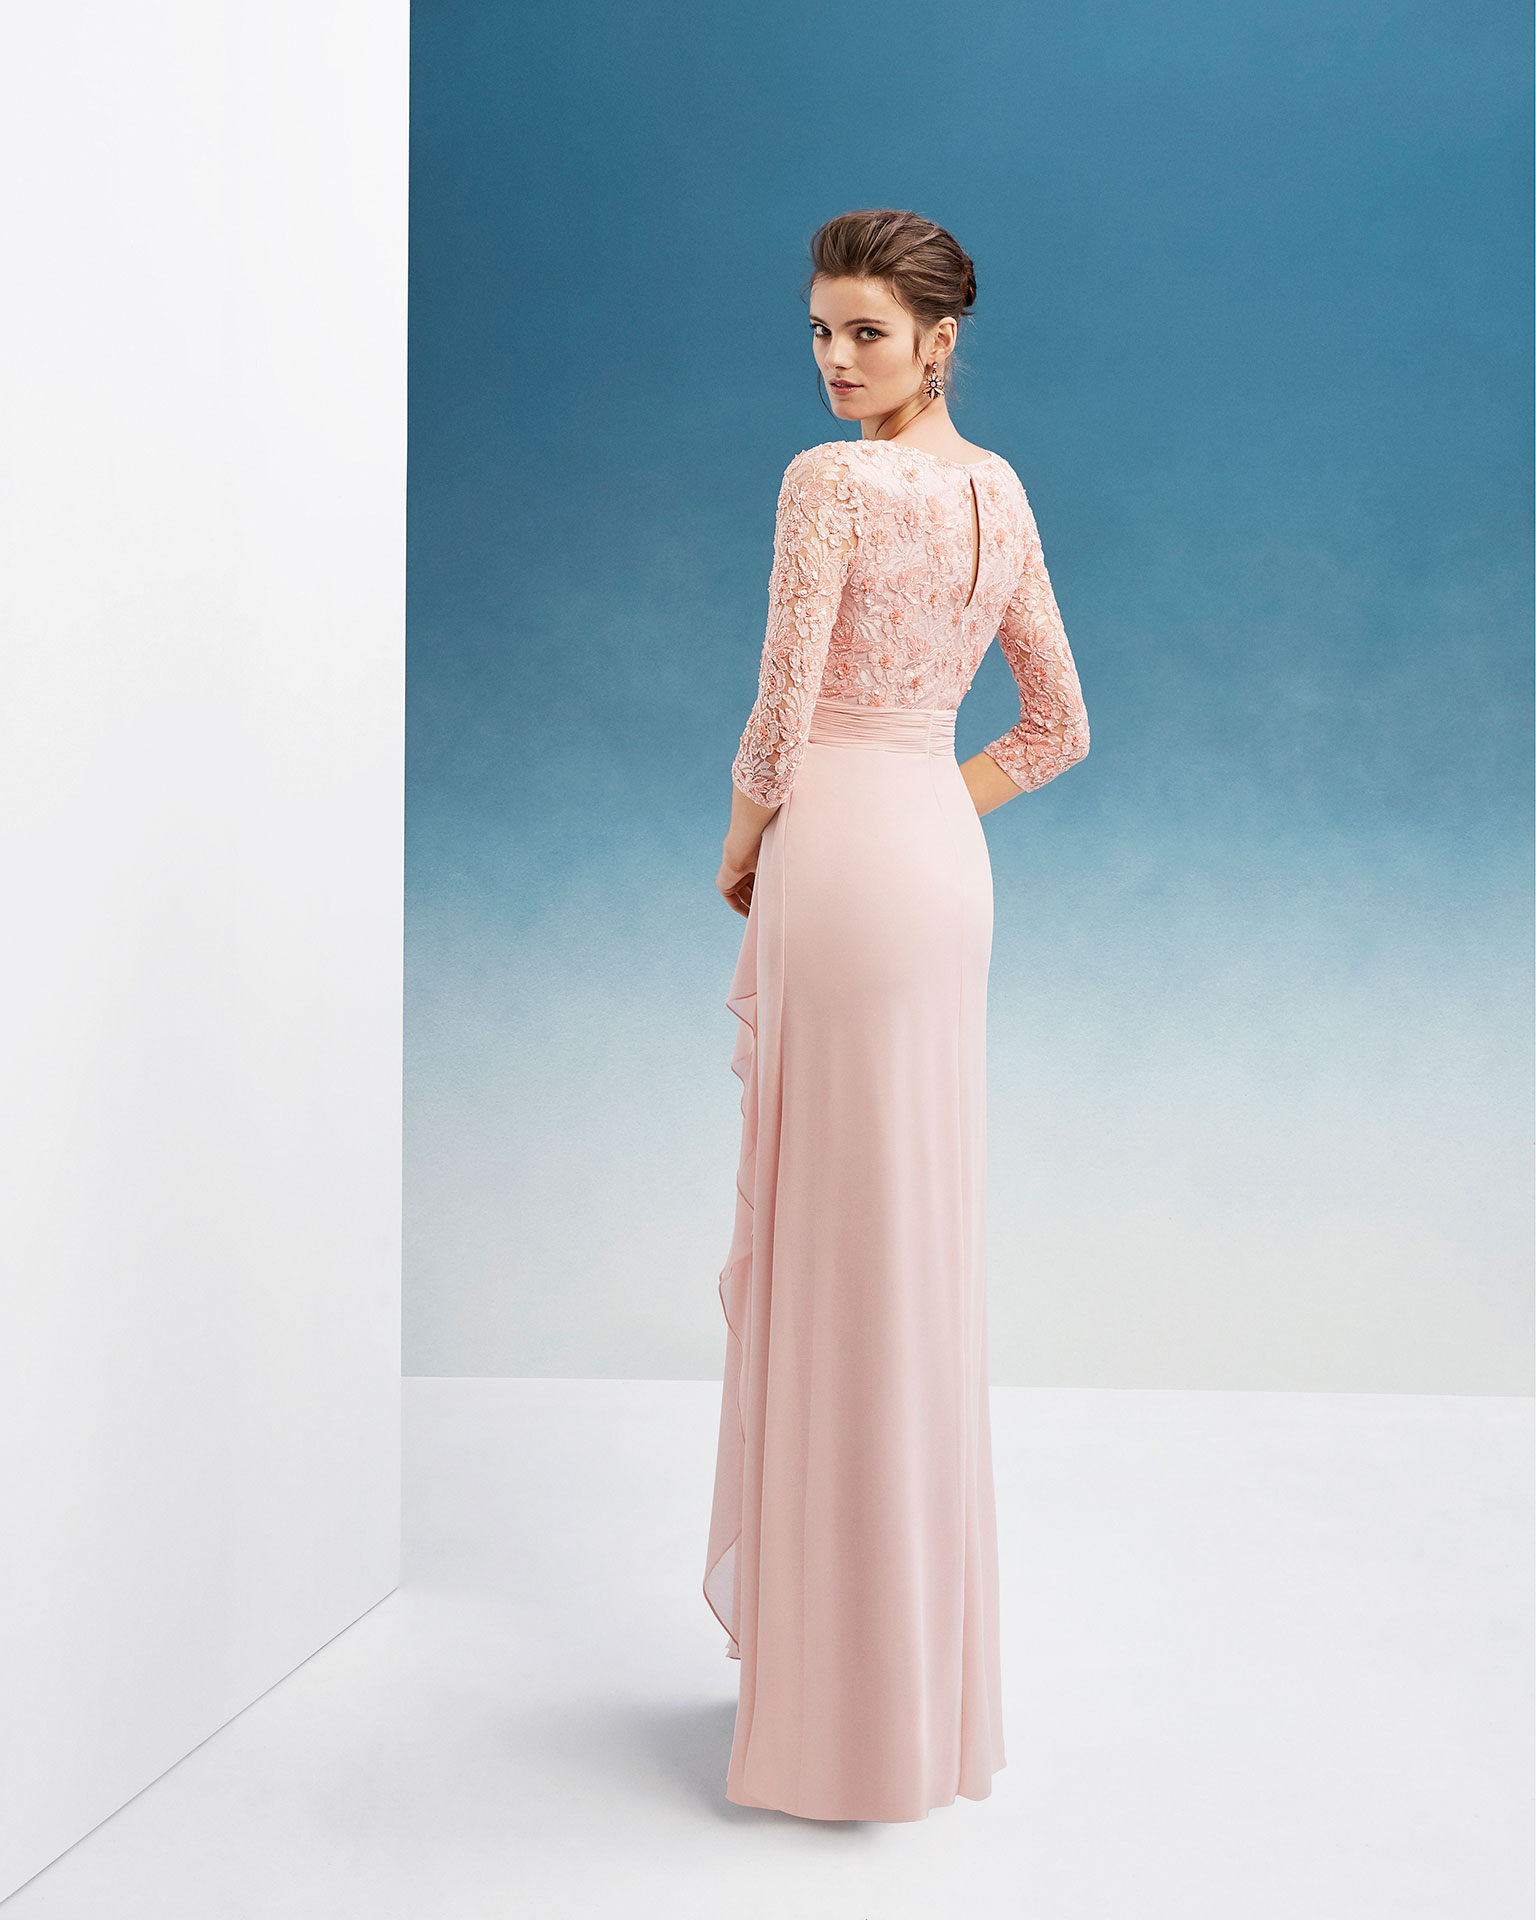 Beaded crepe Georgette and lace cocktail dress. With V-neckline, long sleeves and skirt with side flounce. 2019 FIESTA AIRE BARCELONA Collection.